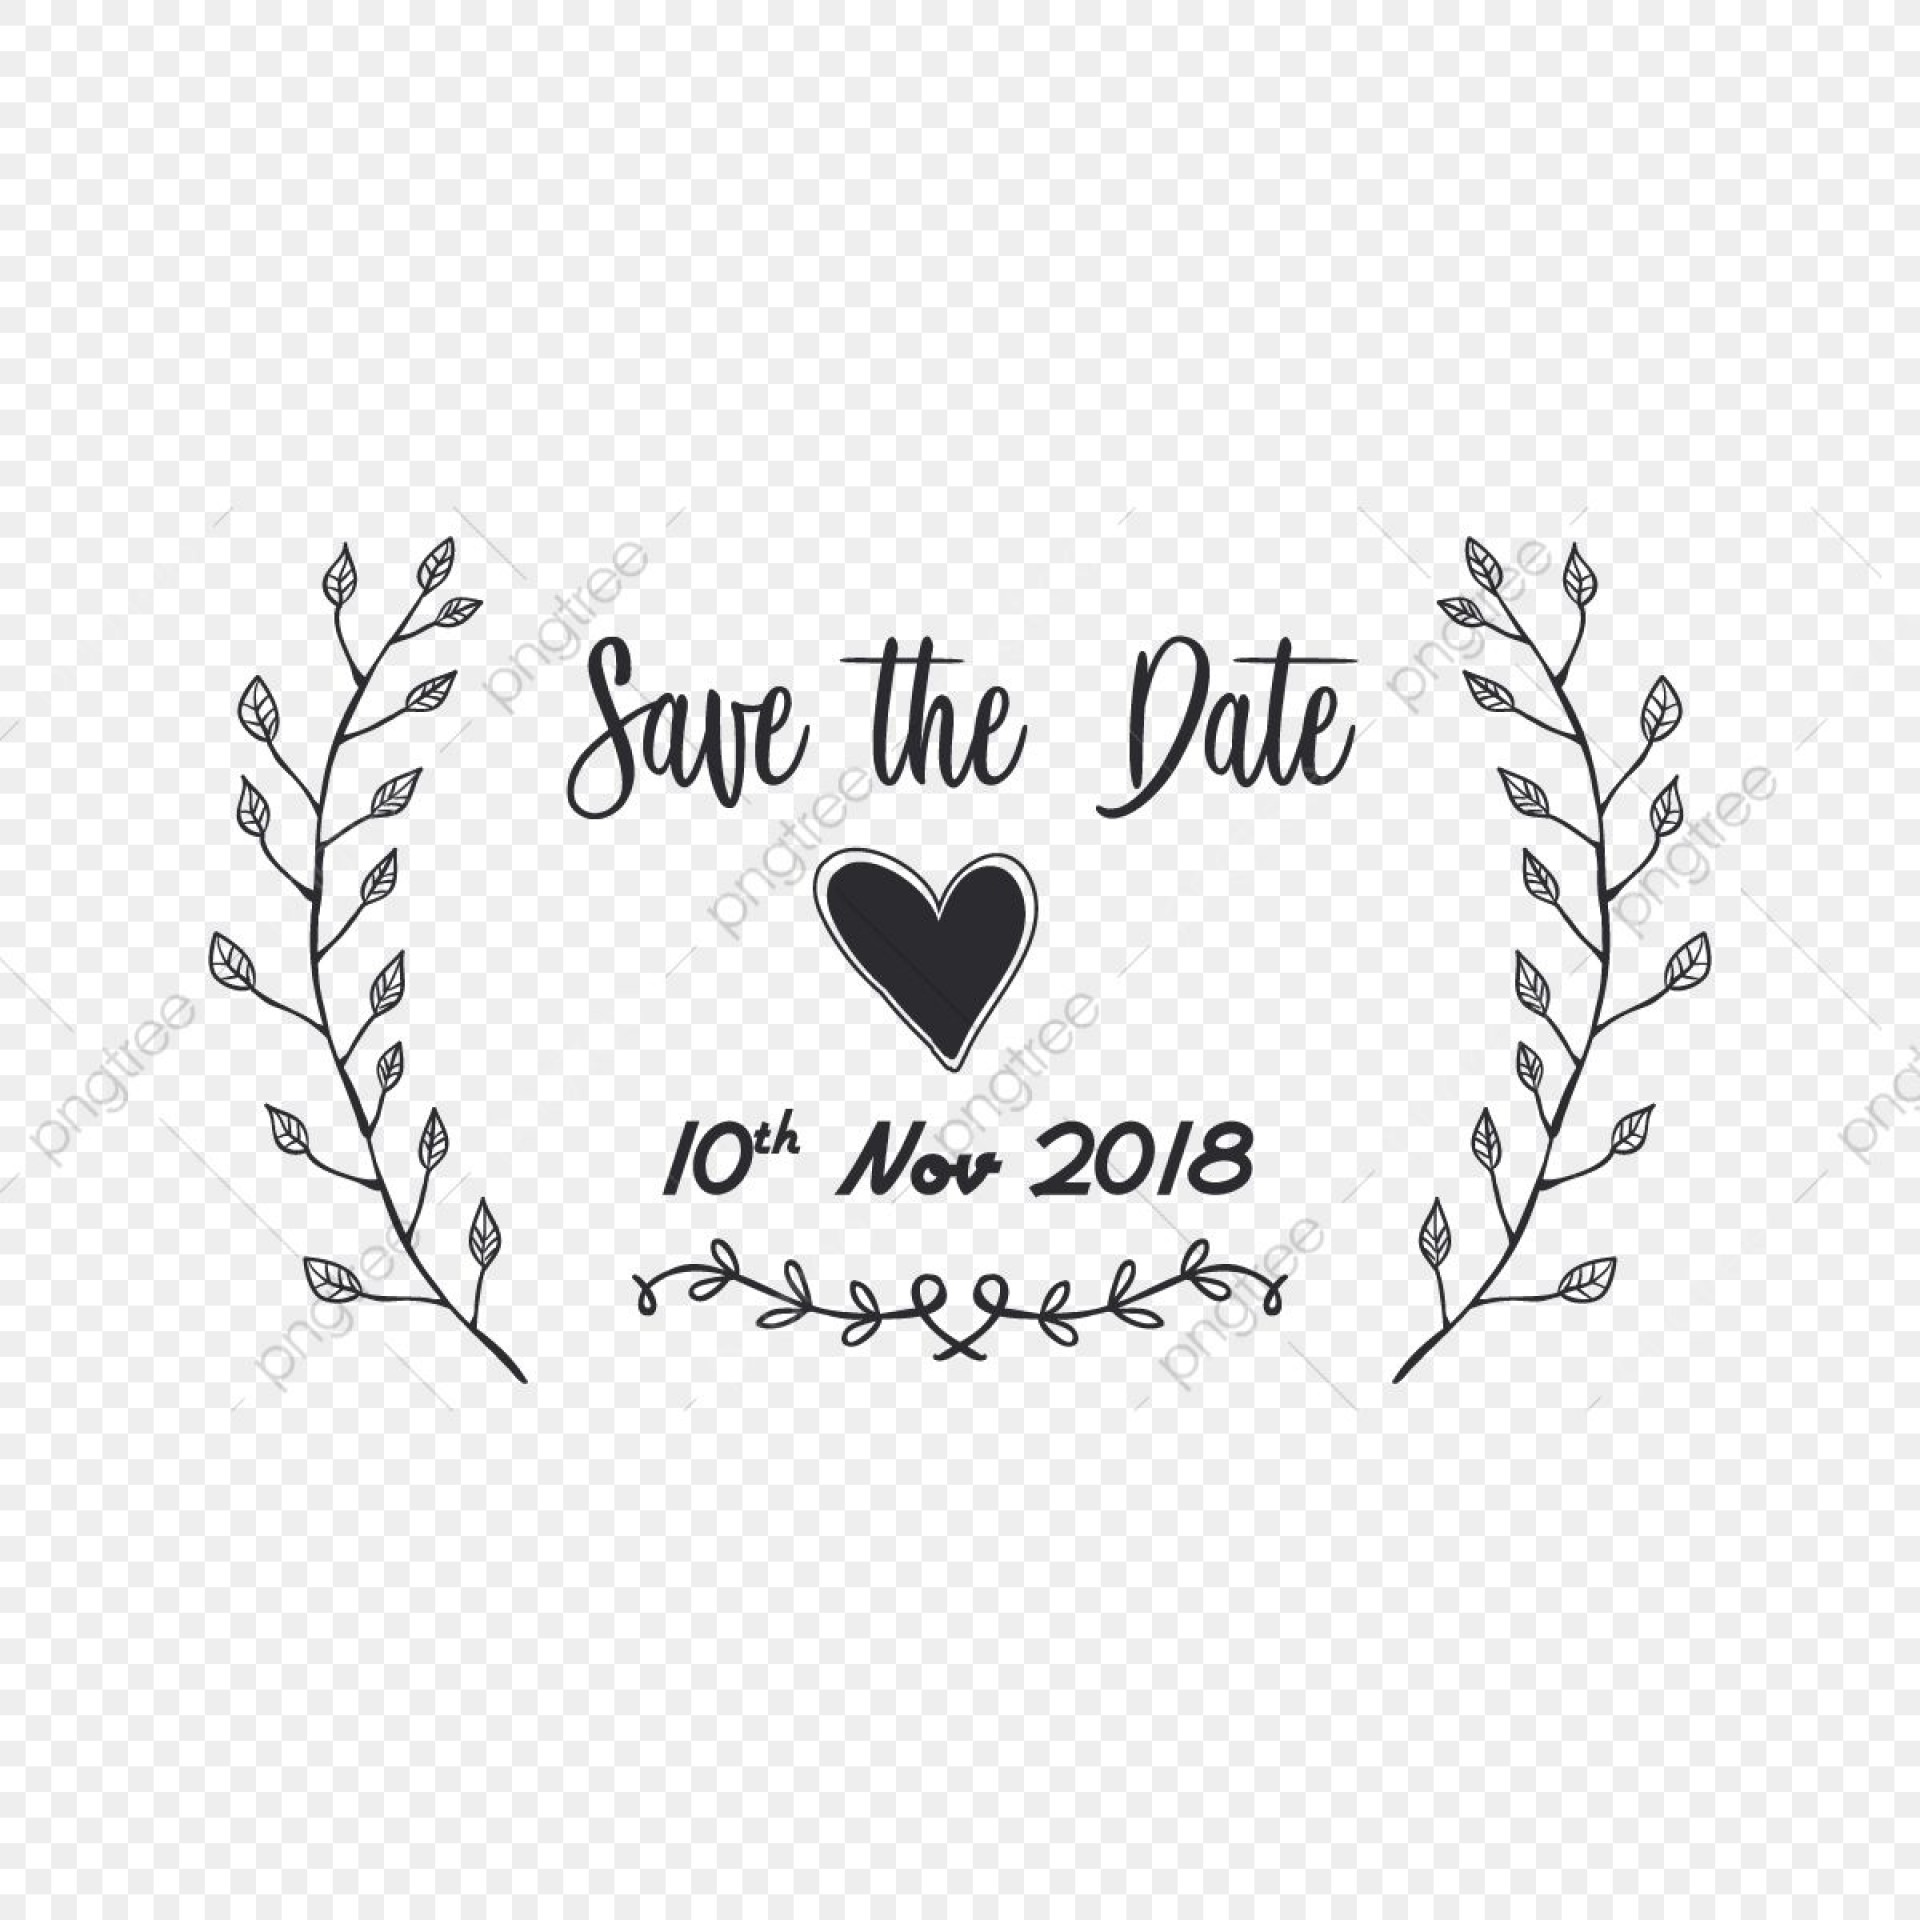 006 Simple Save The Date Word Template High Definition  Free Birthday For Microsoft Postcard Flyer1920